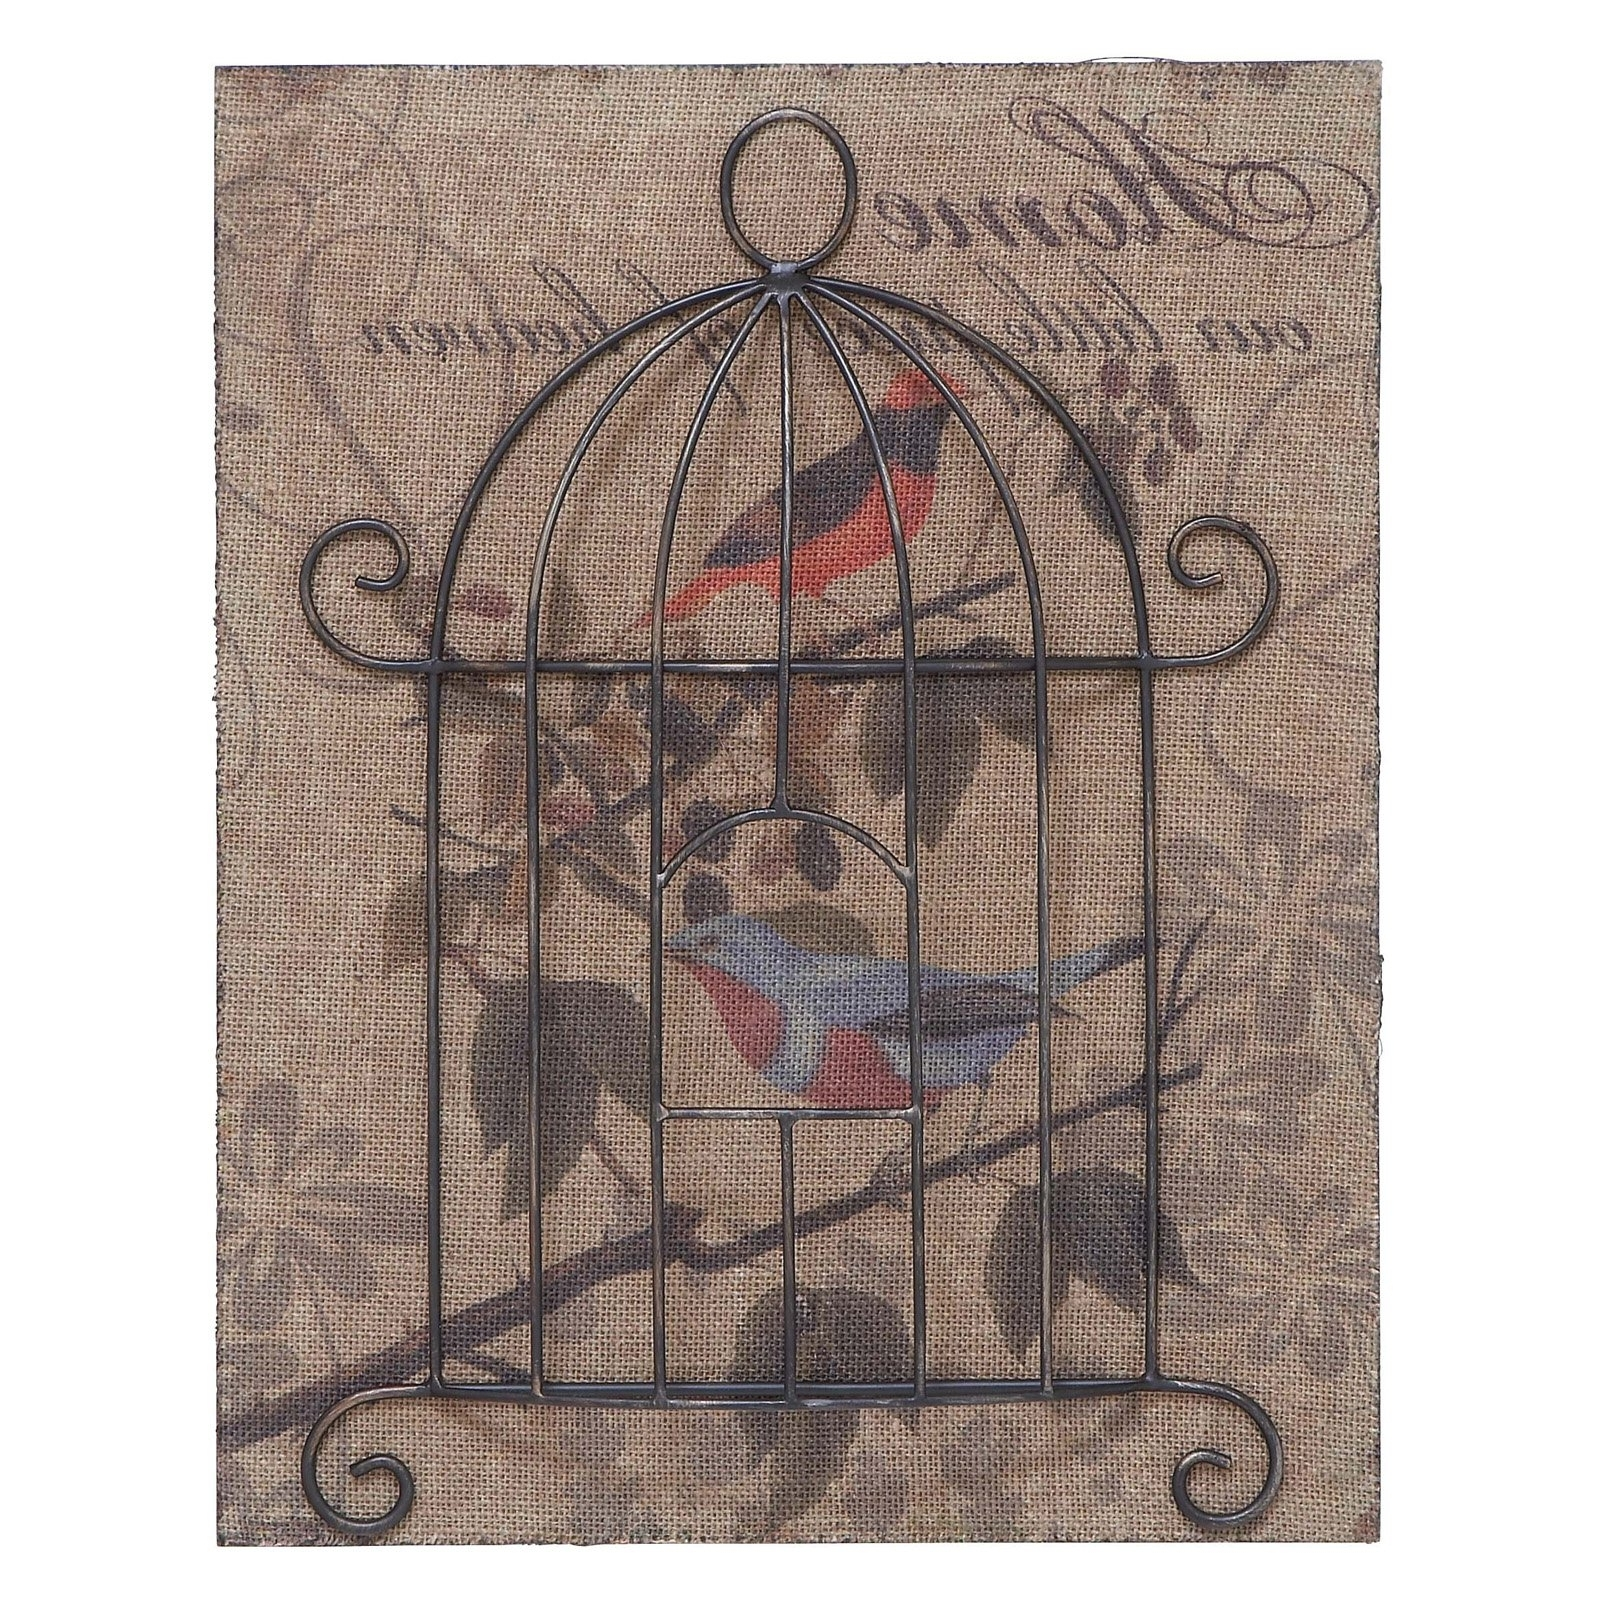 Most Recently Released Woodland Imports Metal Birdcage Wall Art – 16w X 20h In (View 12 of 15)